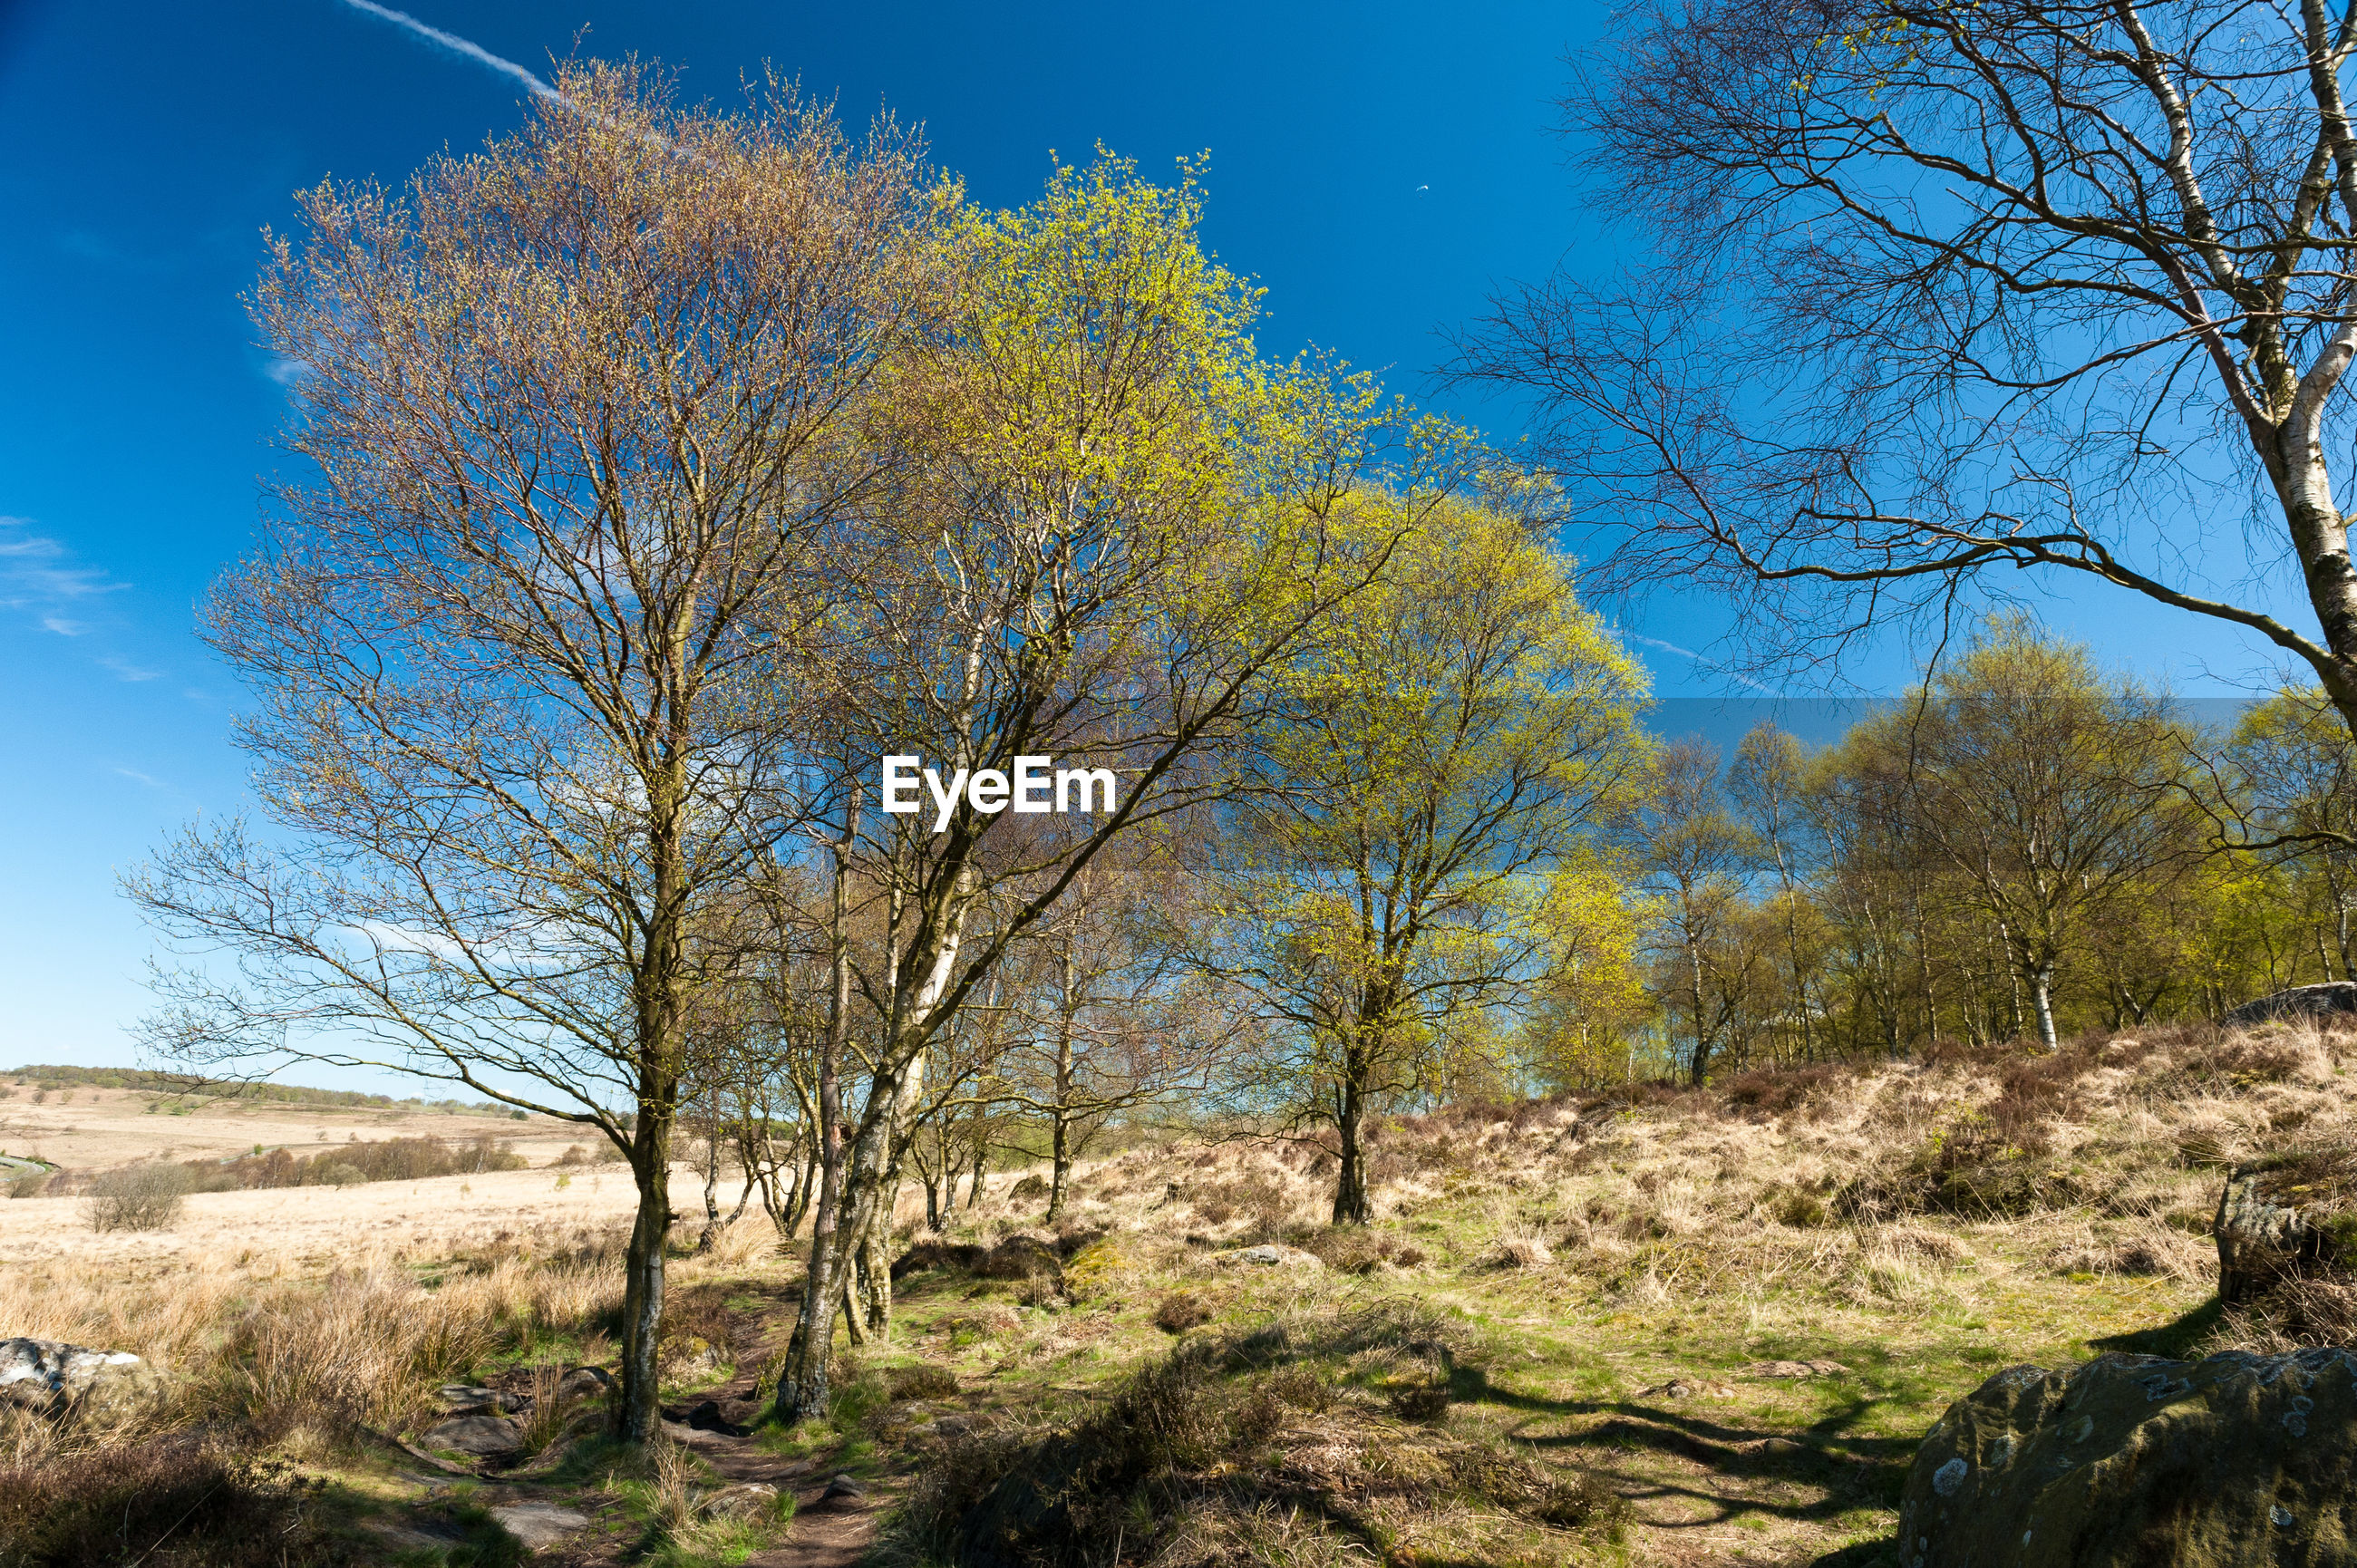 TREES GROWING ON GRASSY FIELD AGAINST CLEAR SKY